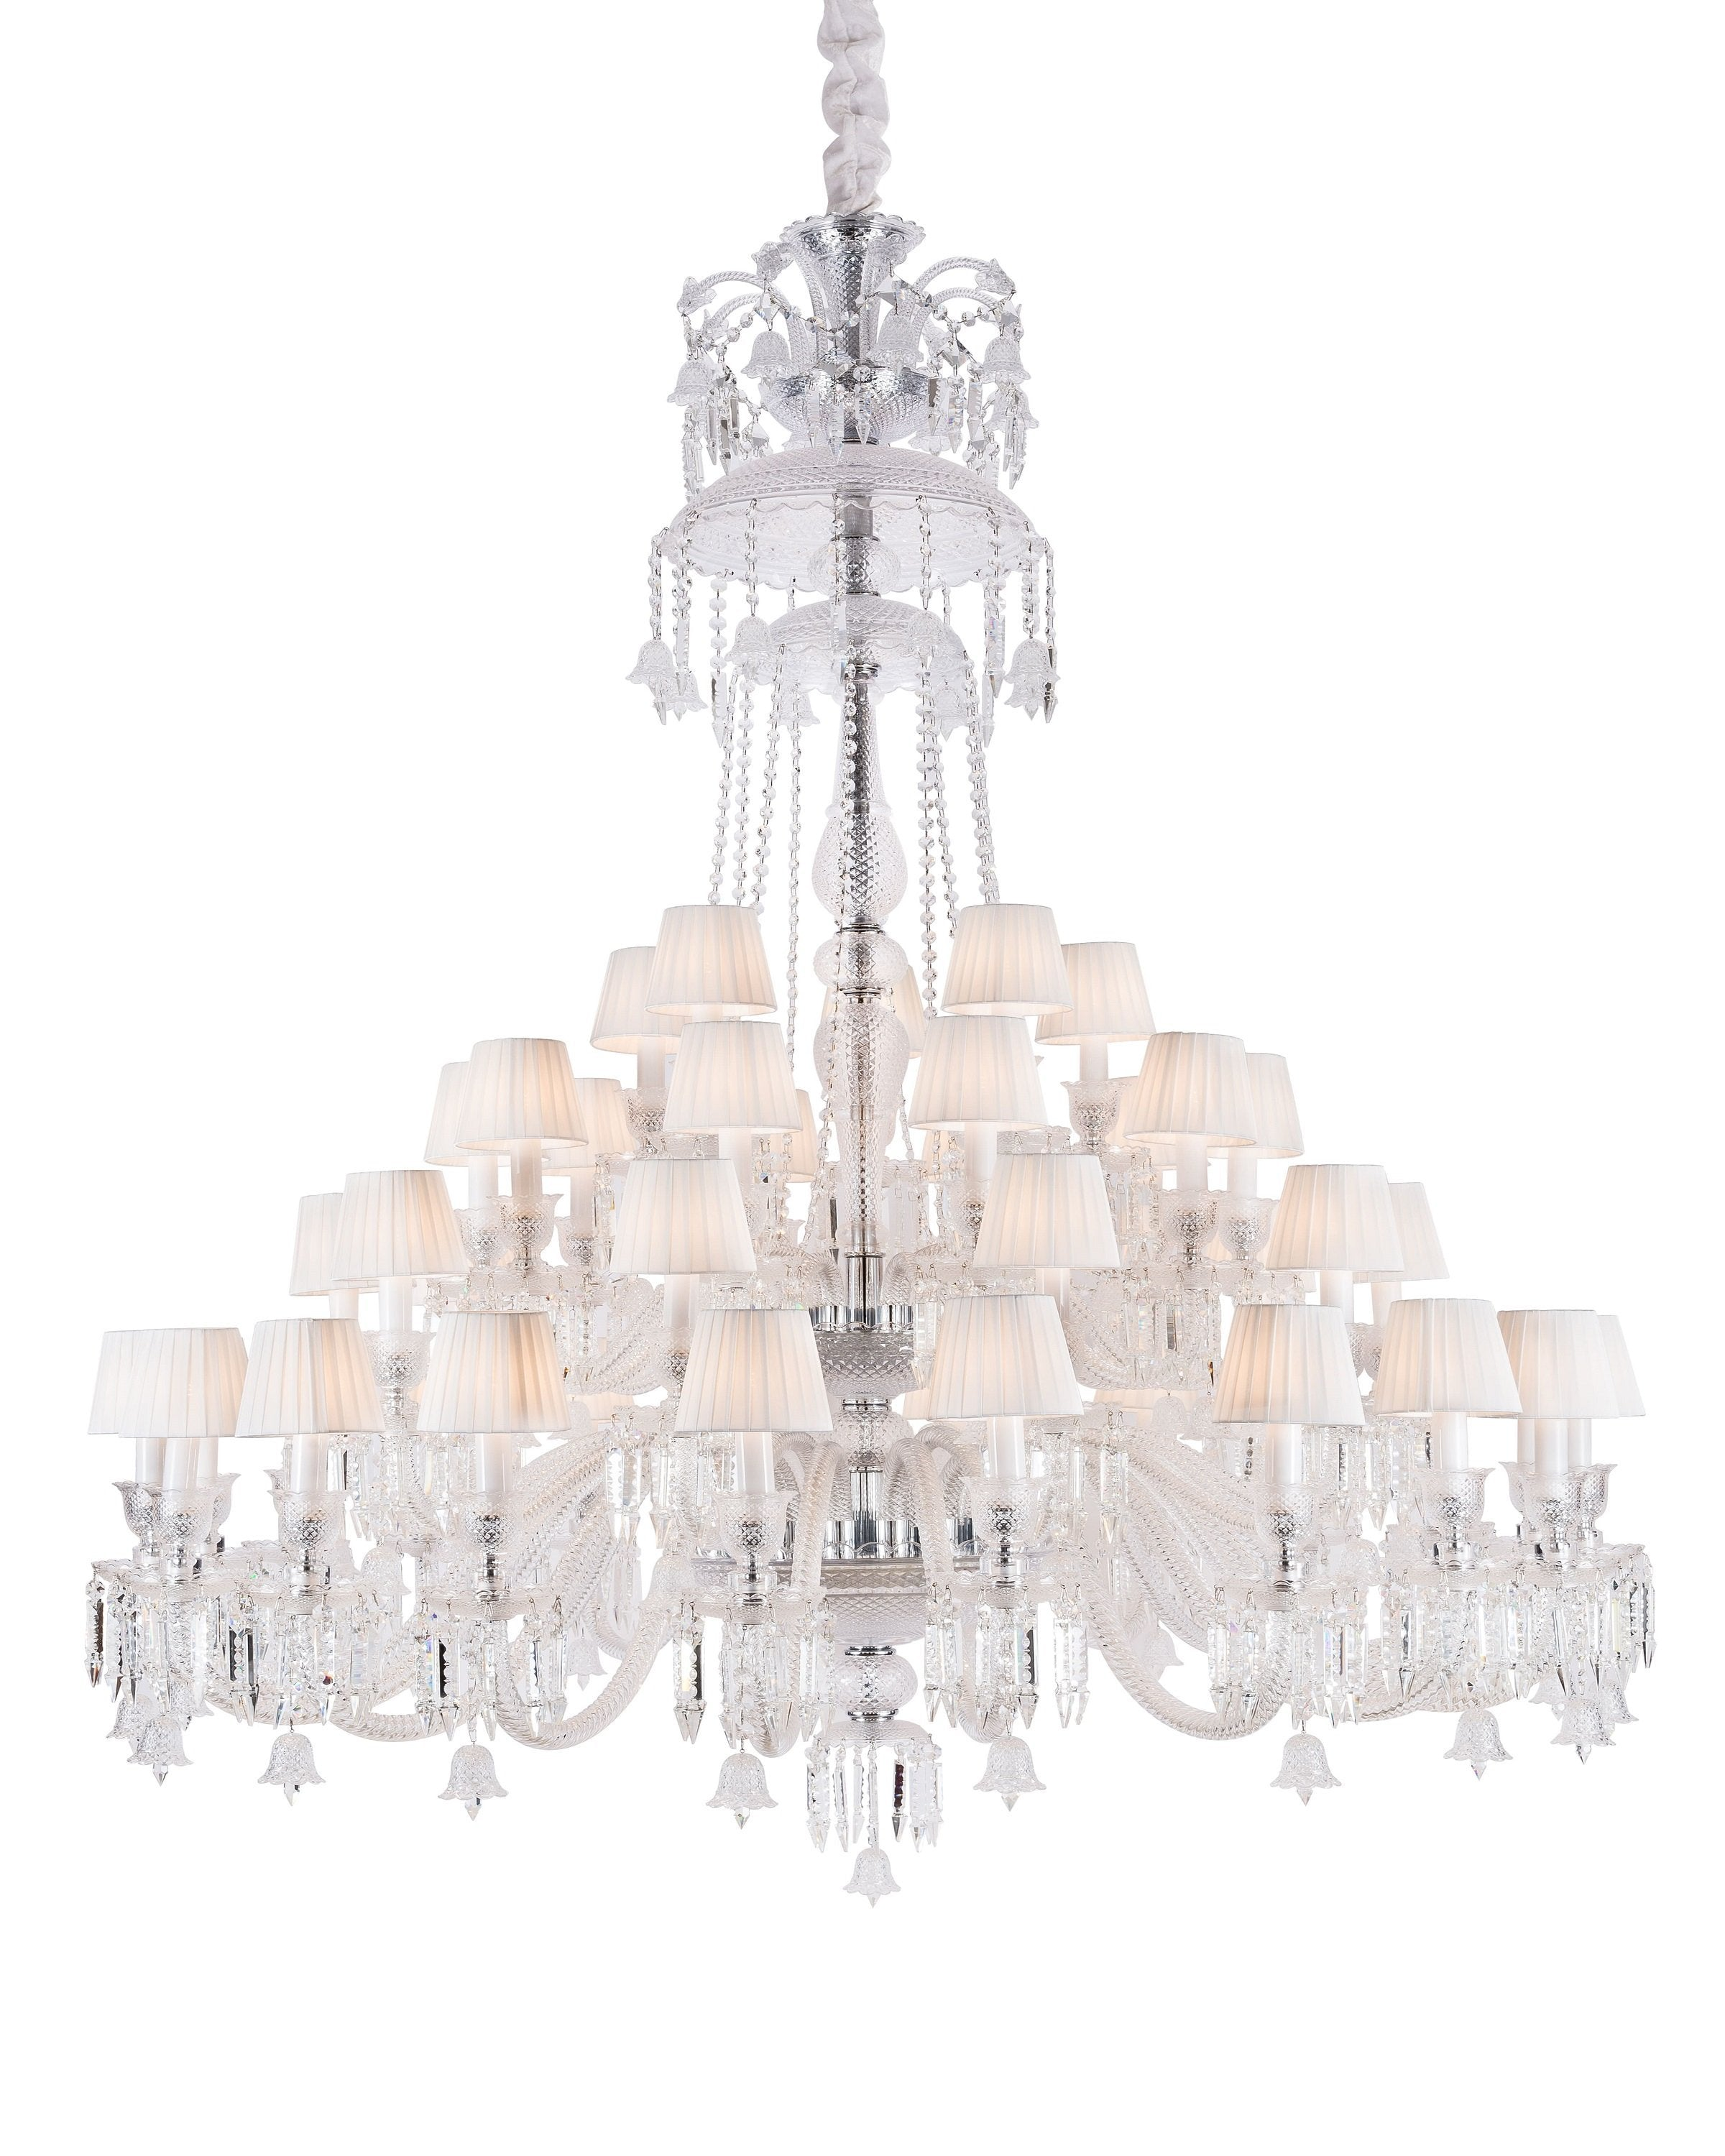 Classic crystal chandelier | ANGIE HOMES